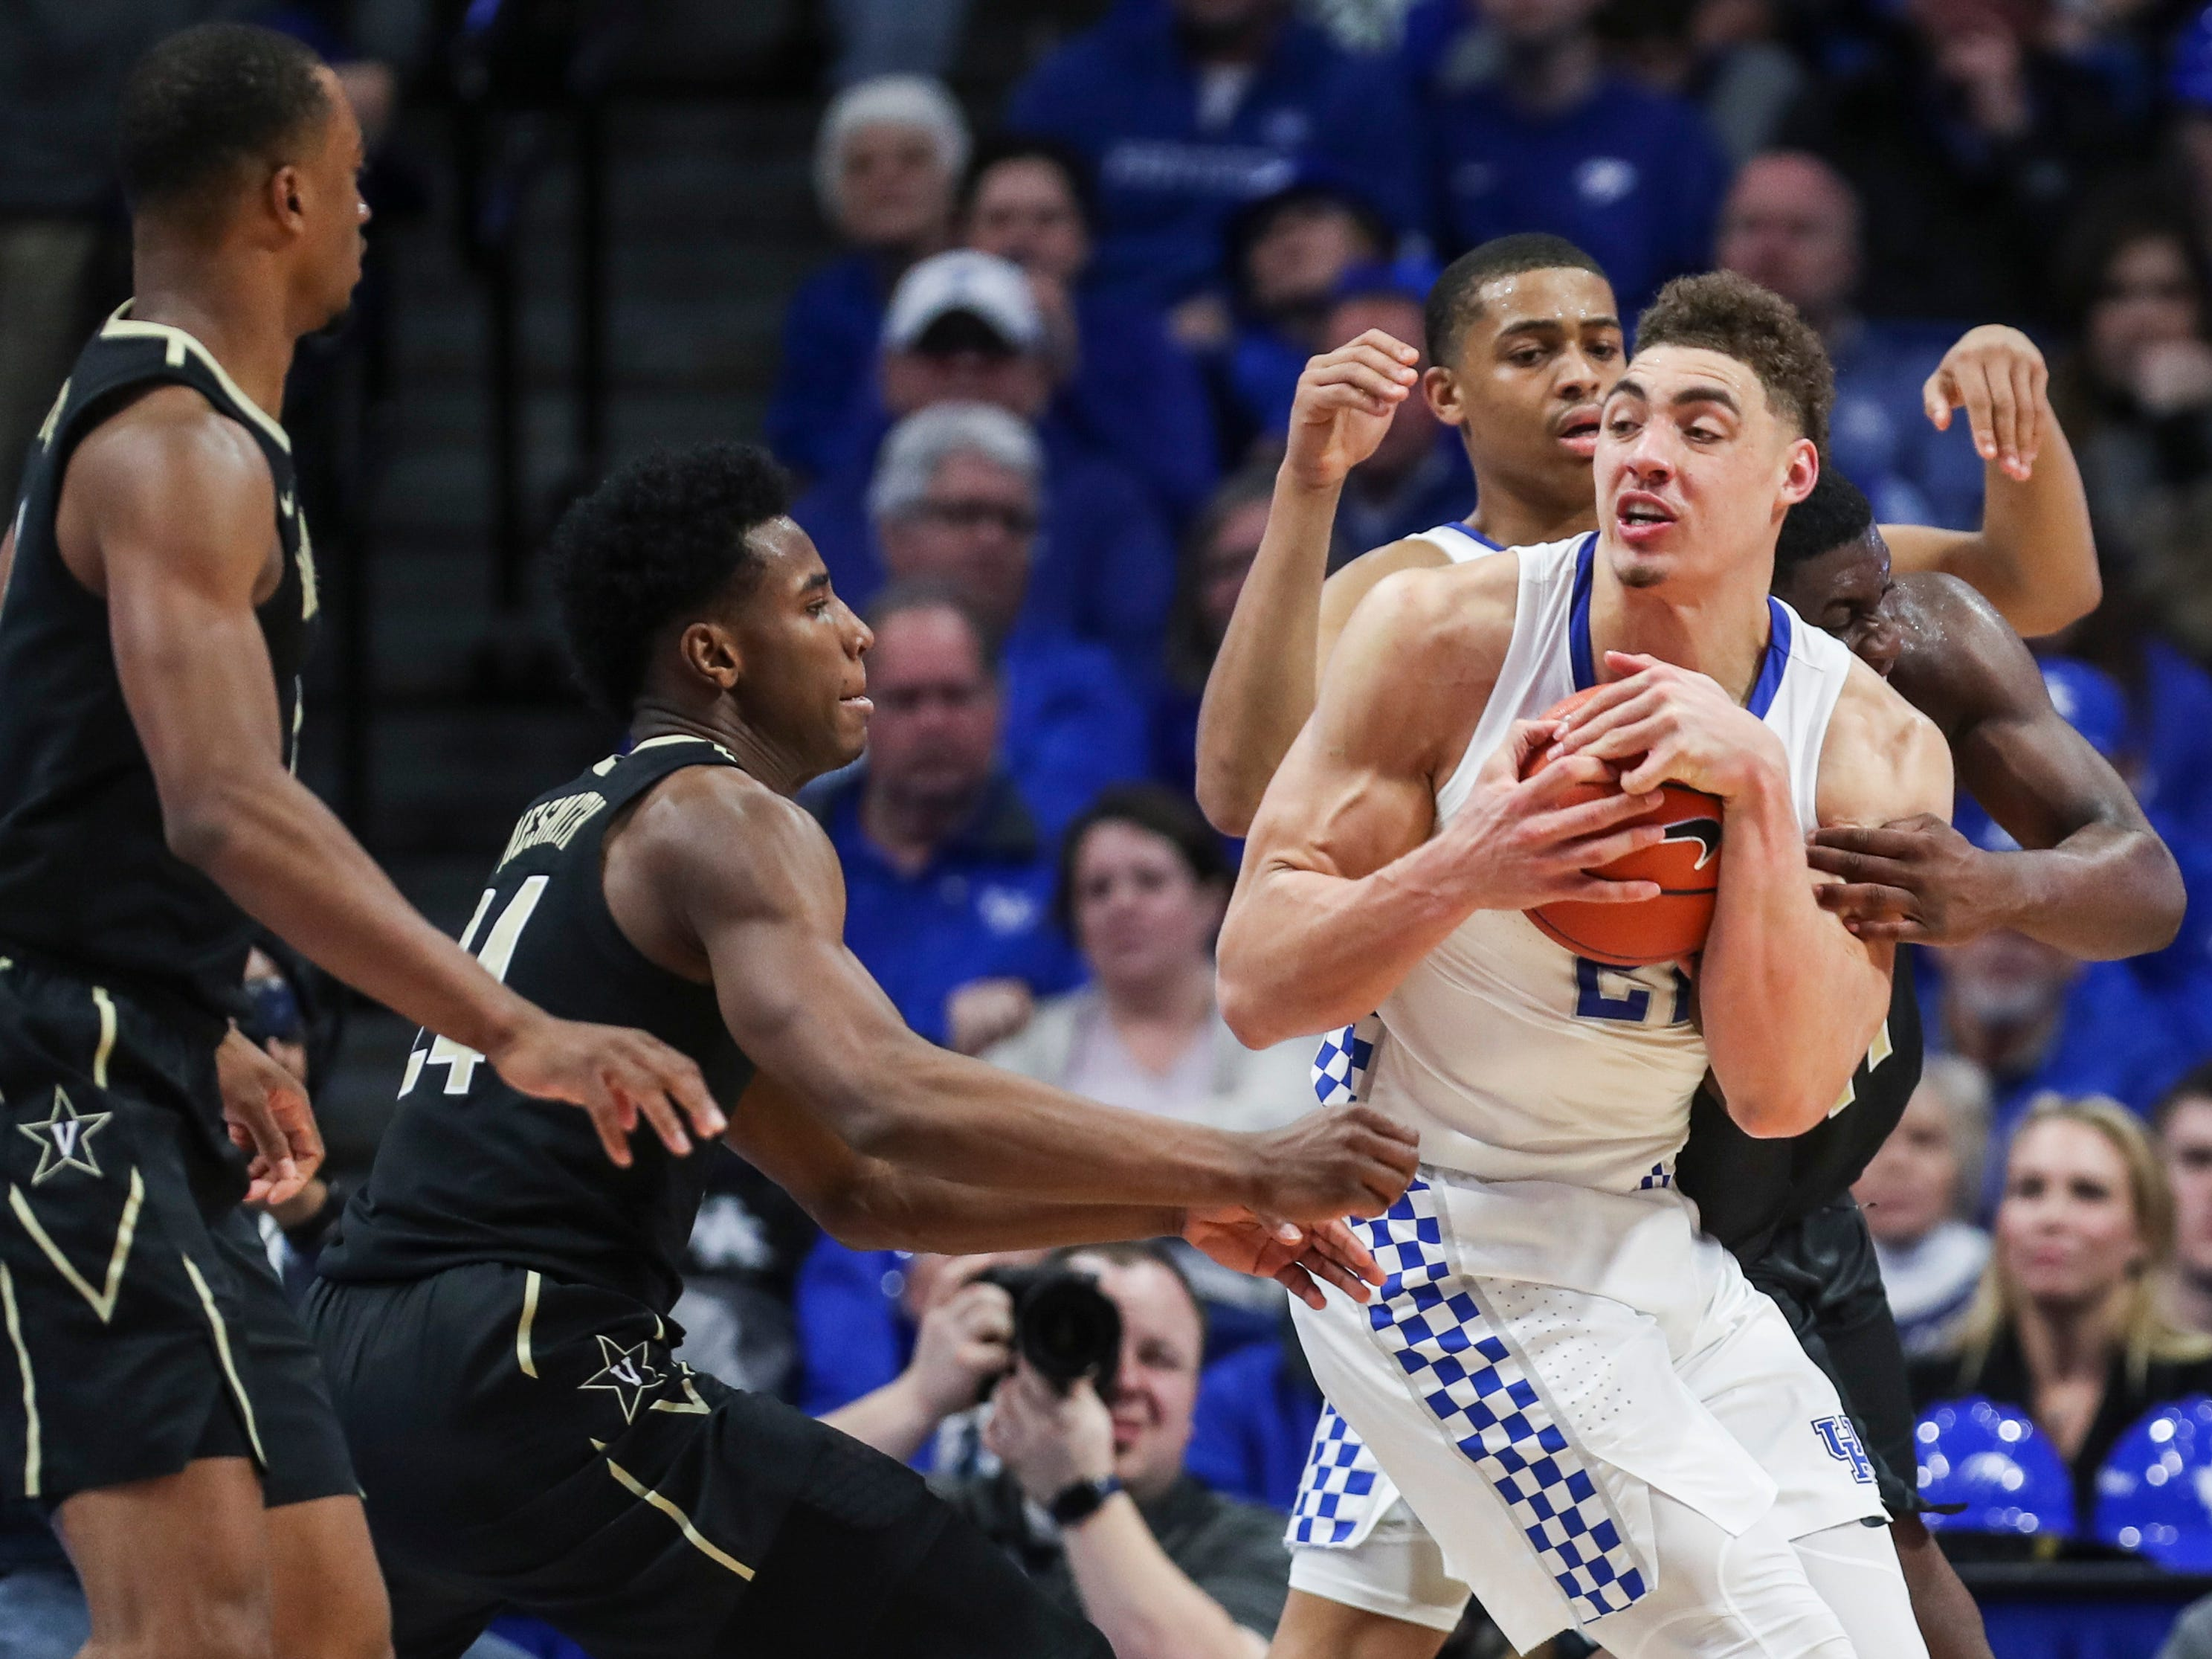 Kentucky's Reid Travis wrestles down one of his 12 rebounds against Vandy Saturday night at Rupp Arena in Lexington. The Cats won 56-47 in a physical game. January 12, 2019